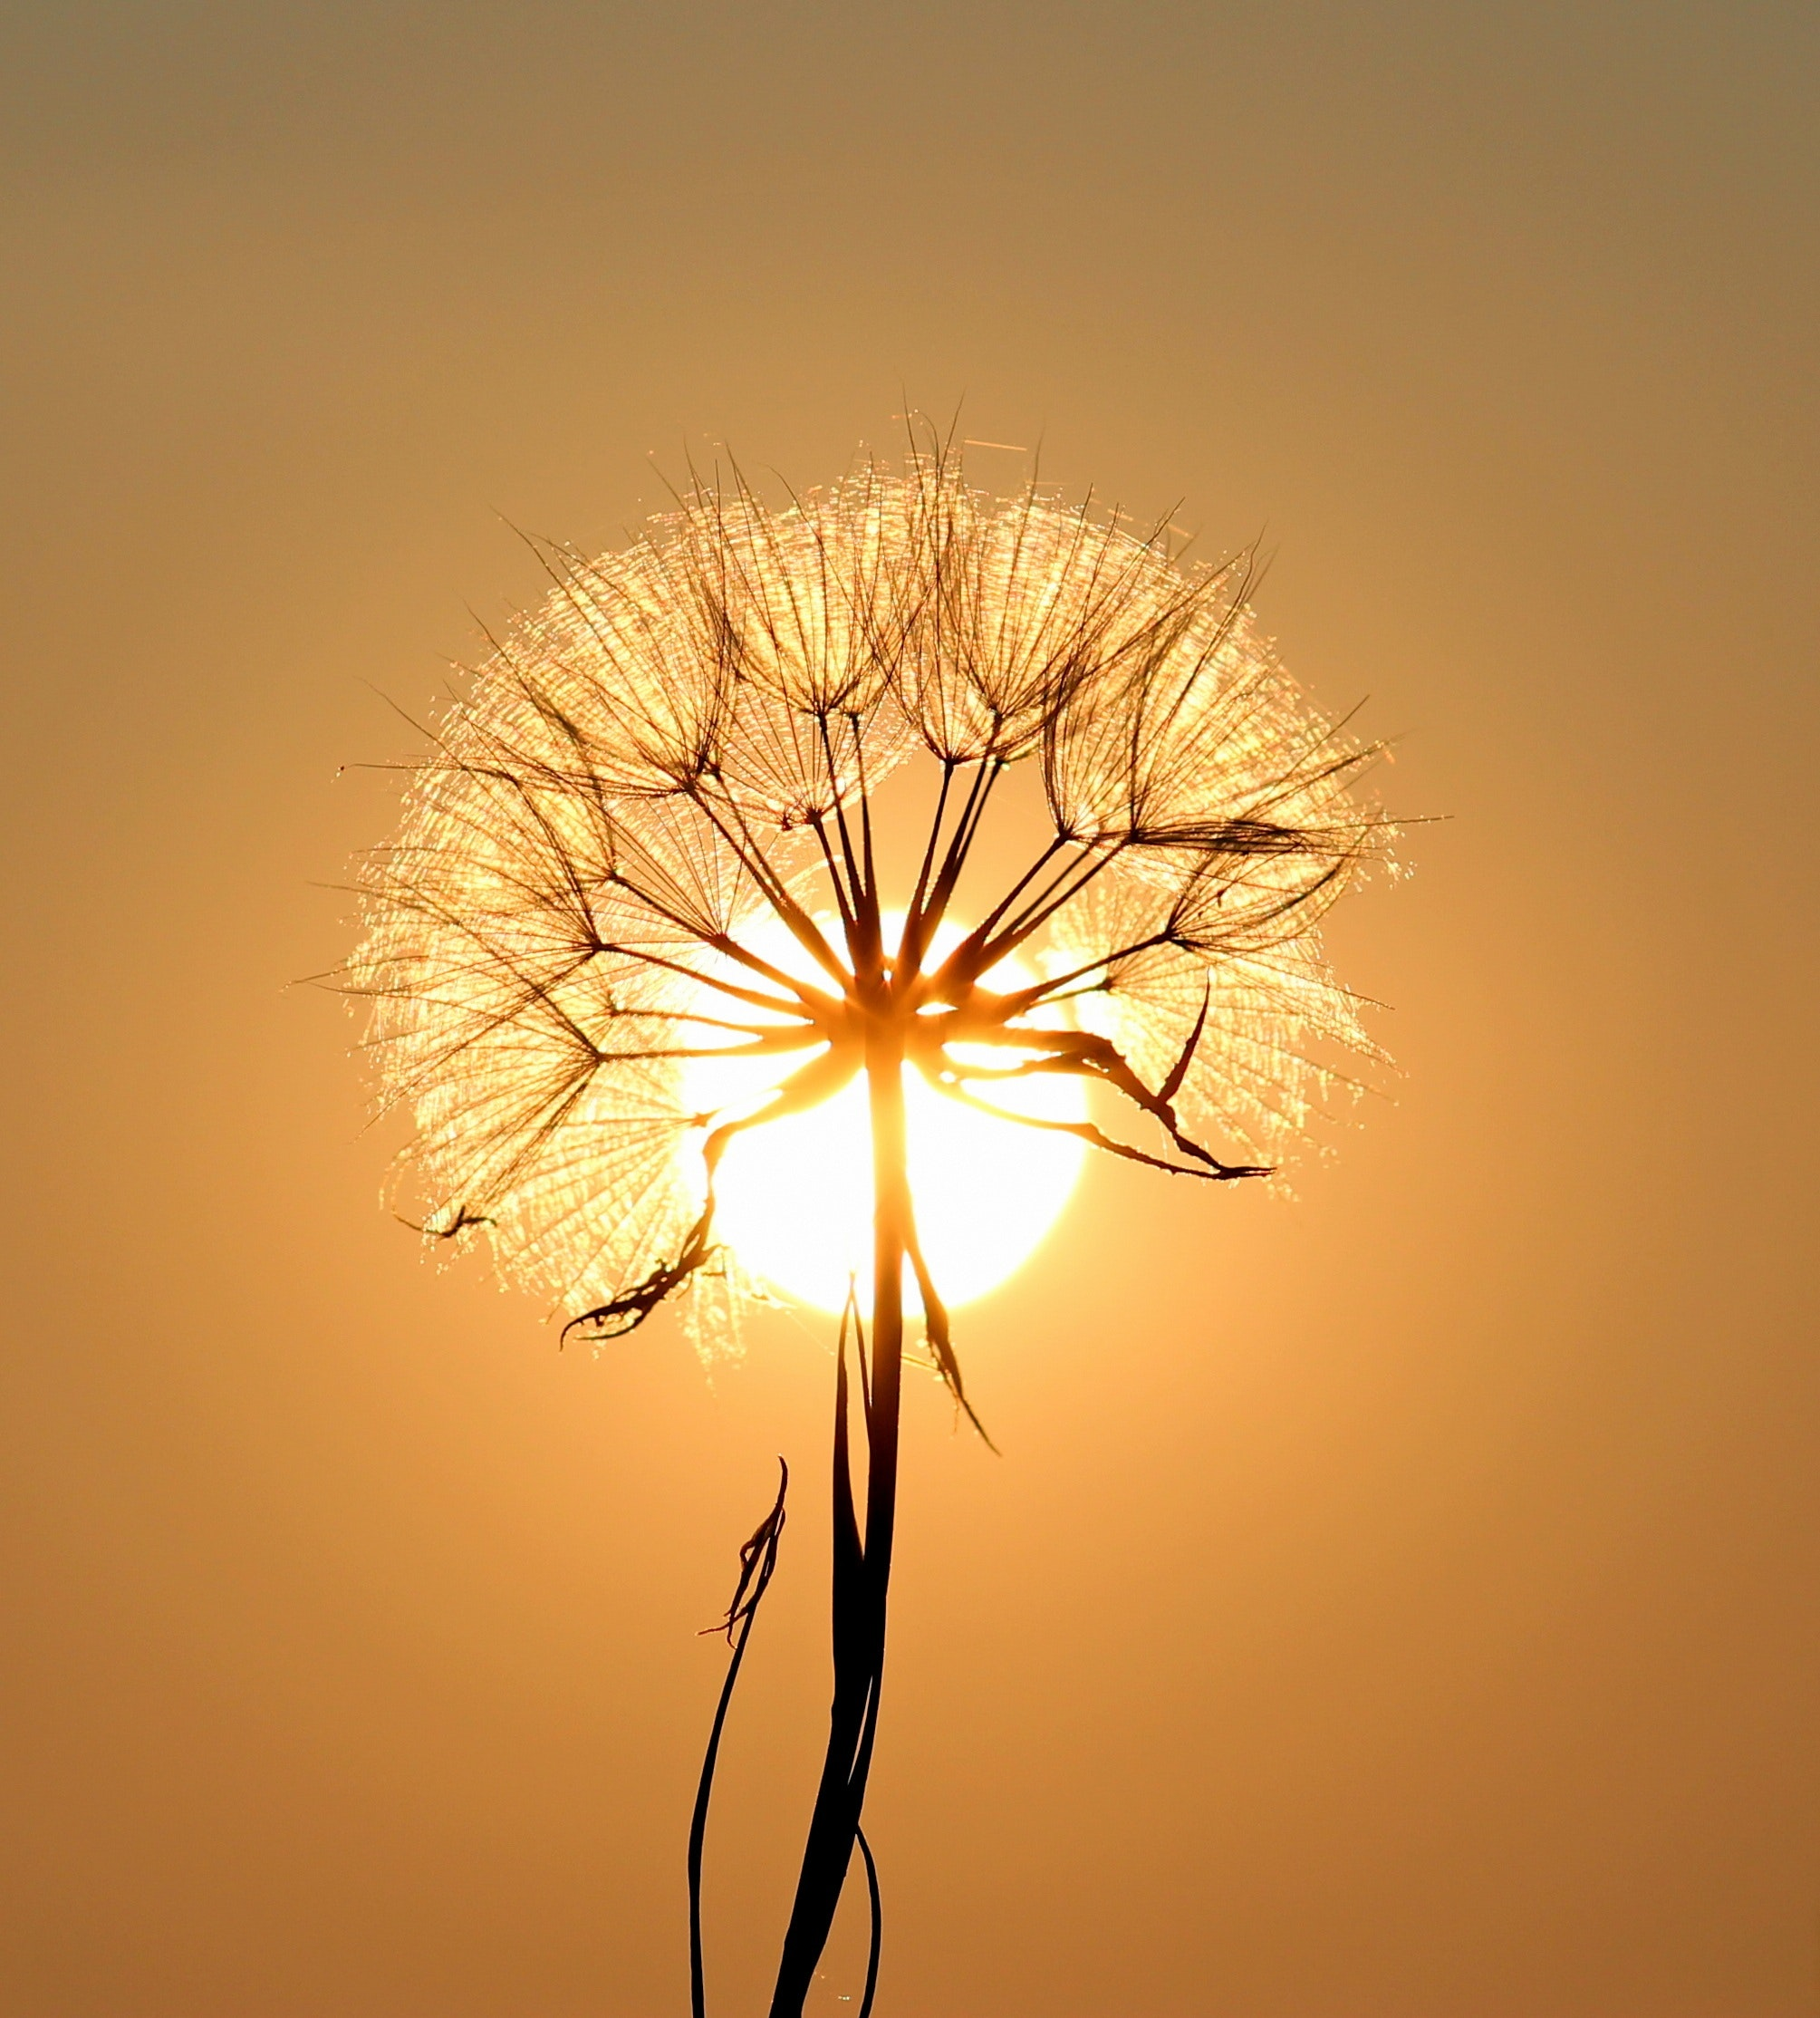 white dandelion flower · free stock photo